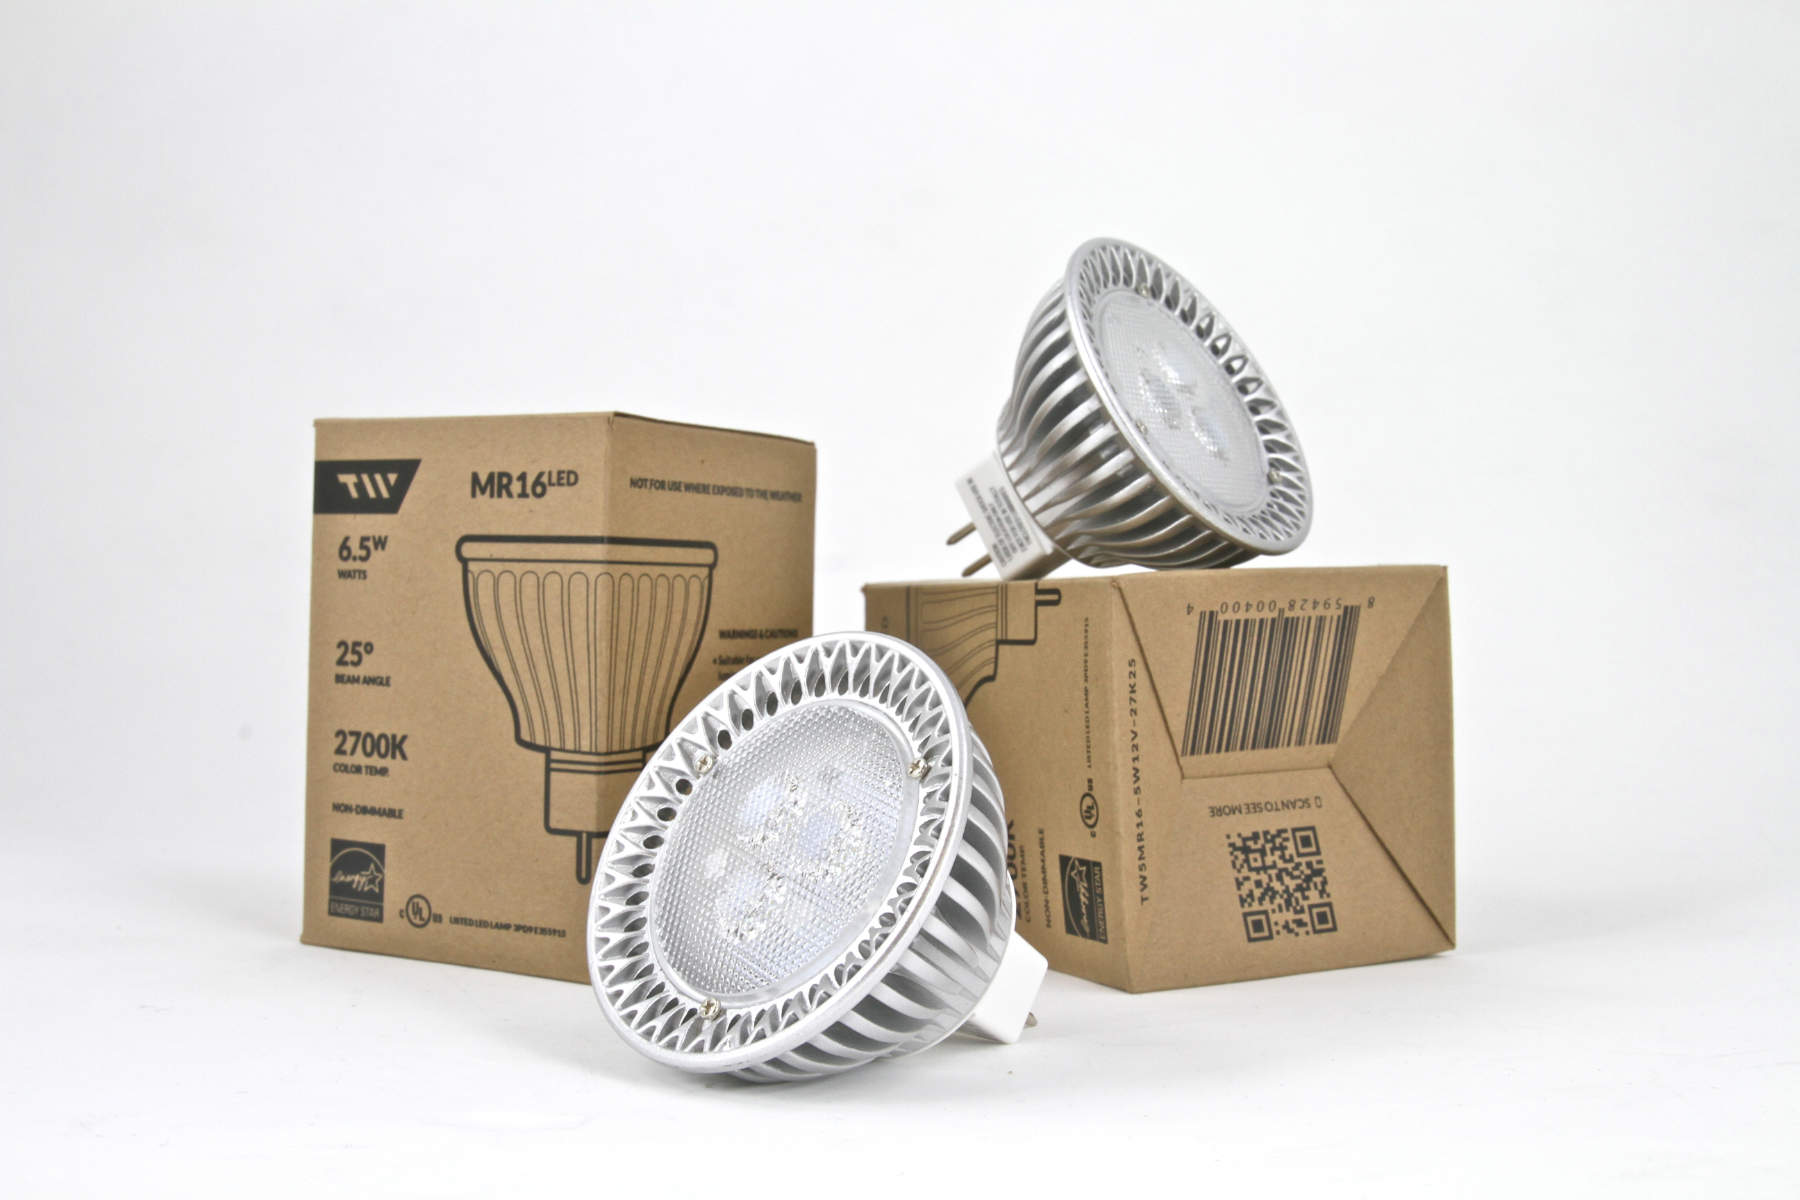 Packaging and physical example of TW Lighting's MR16LED bulb.